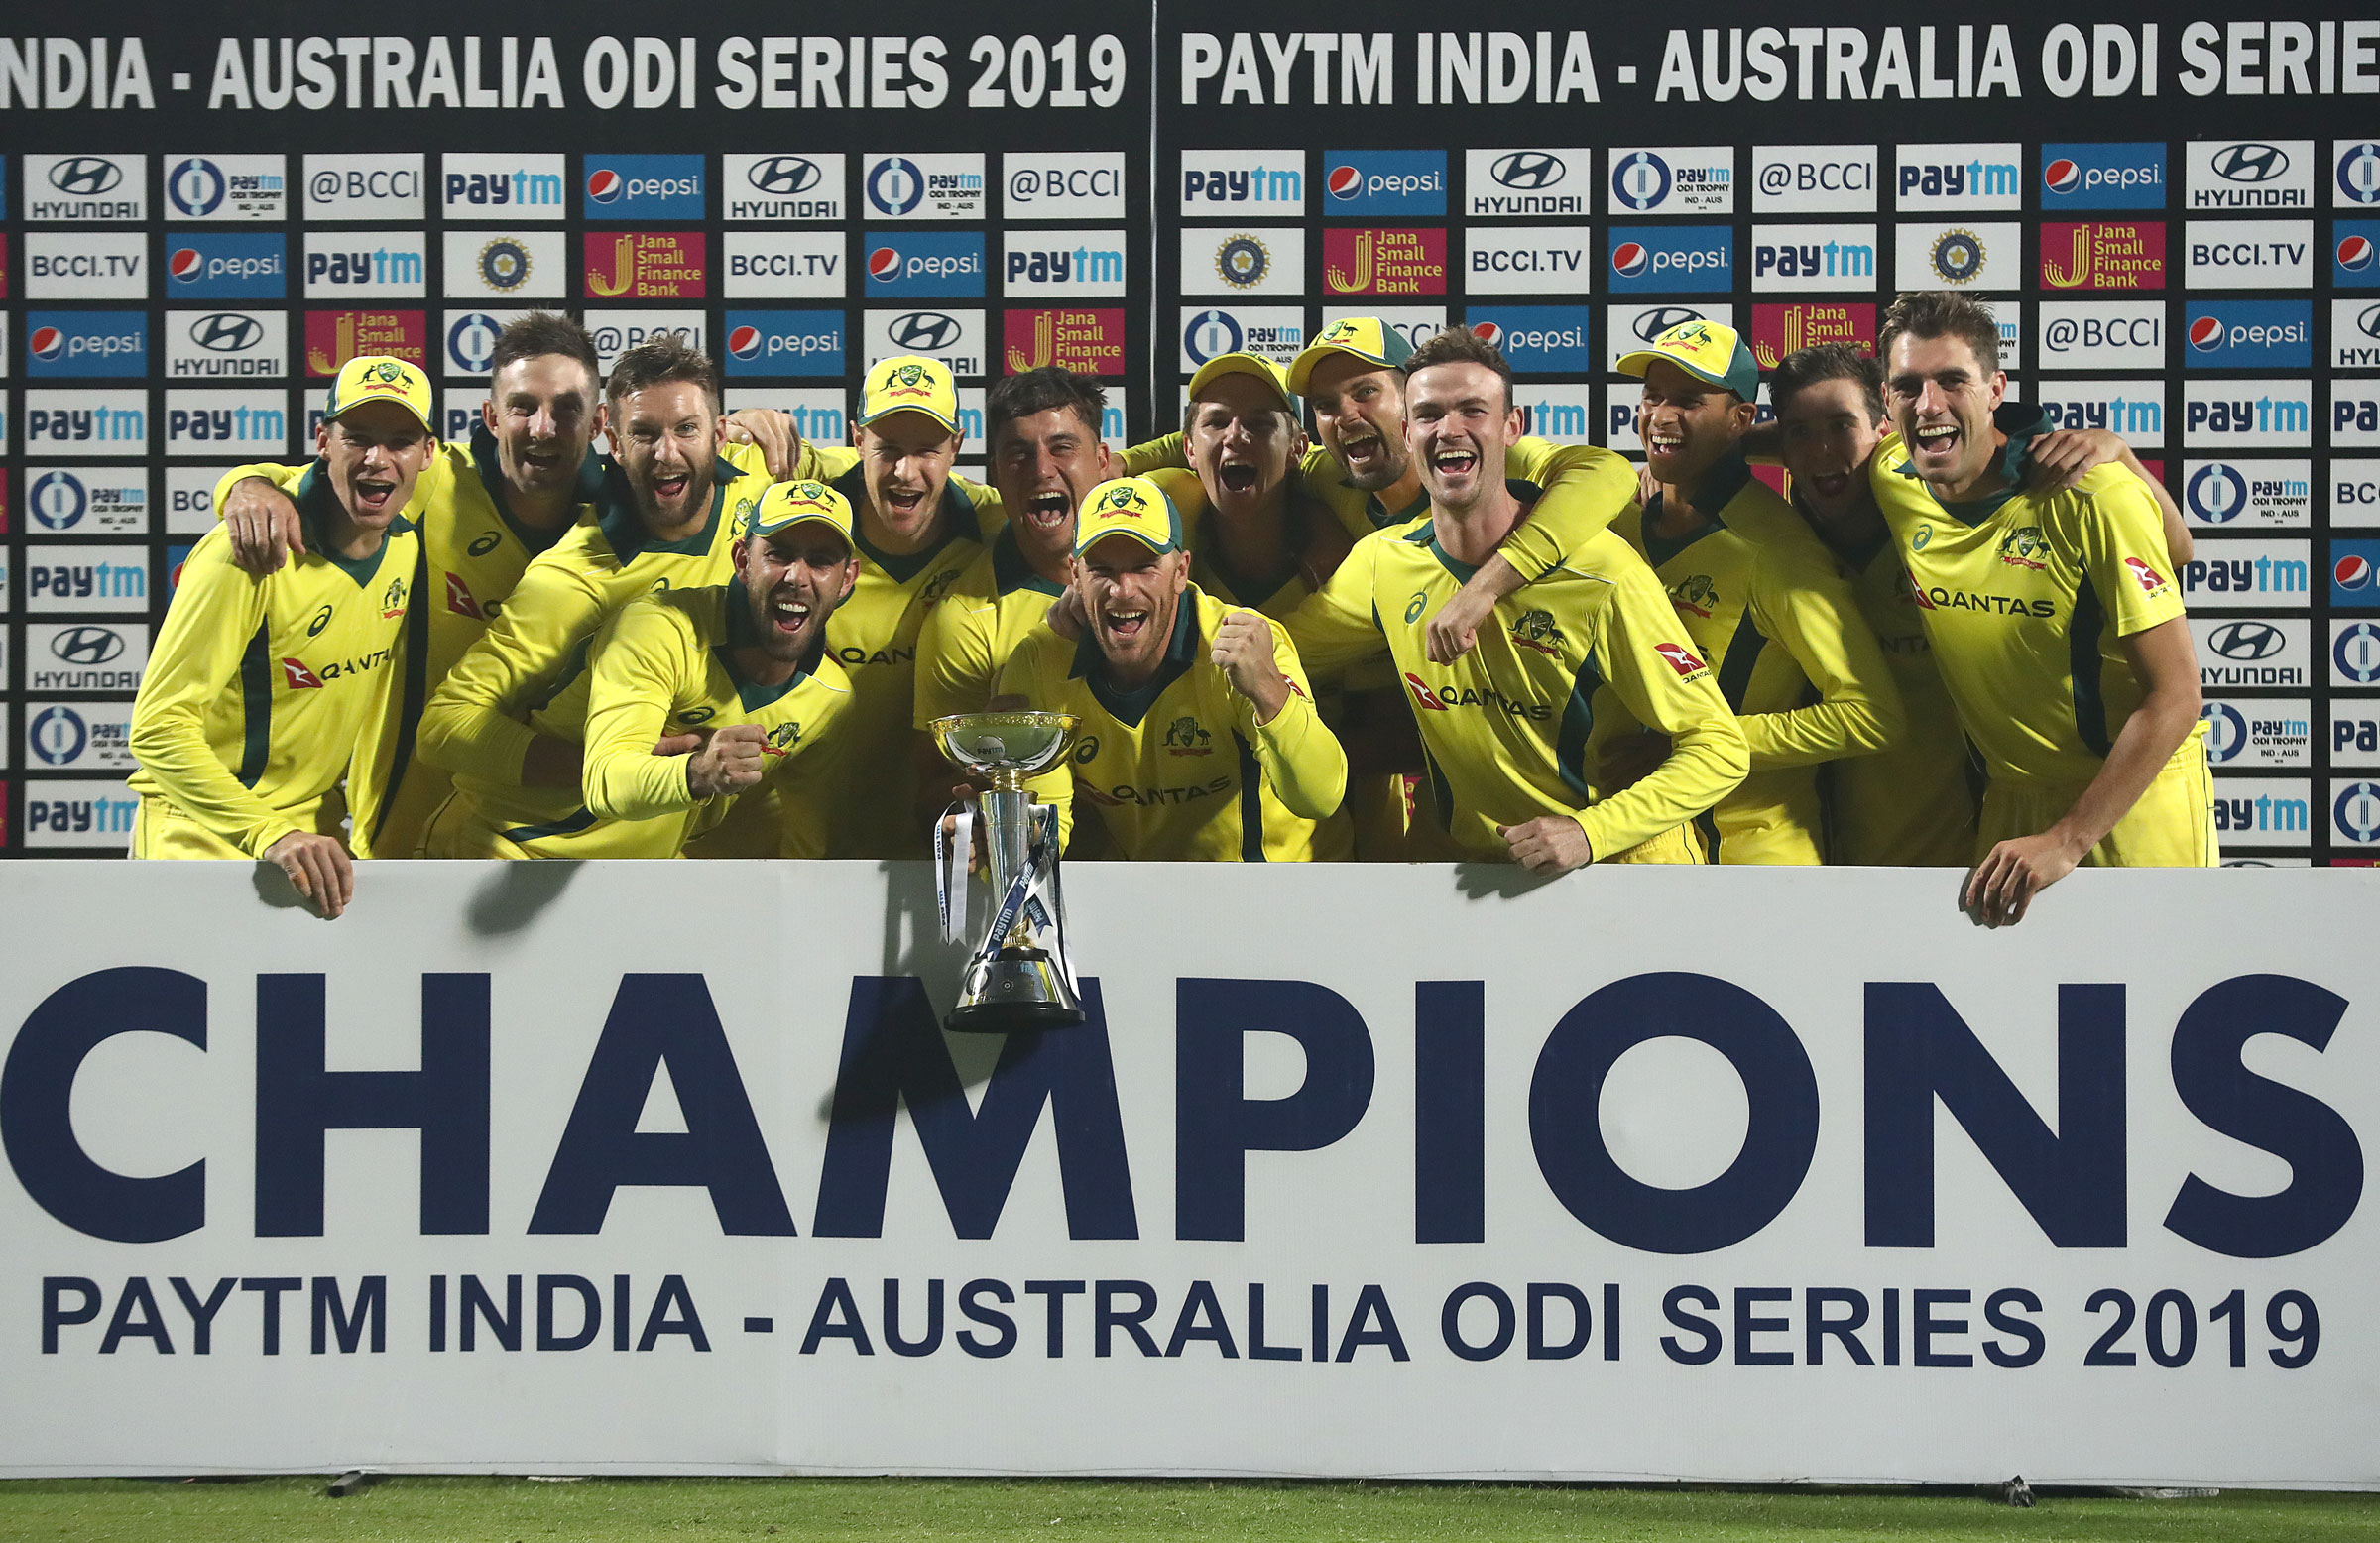 Today image of the day in india australia one year